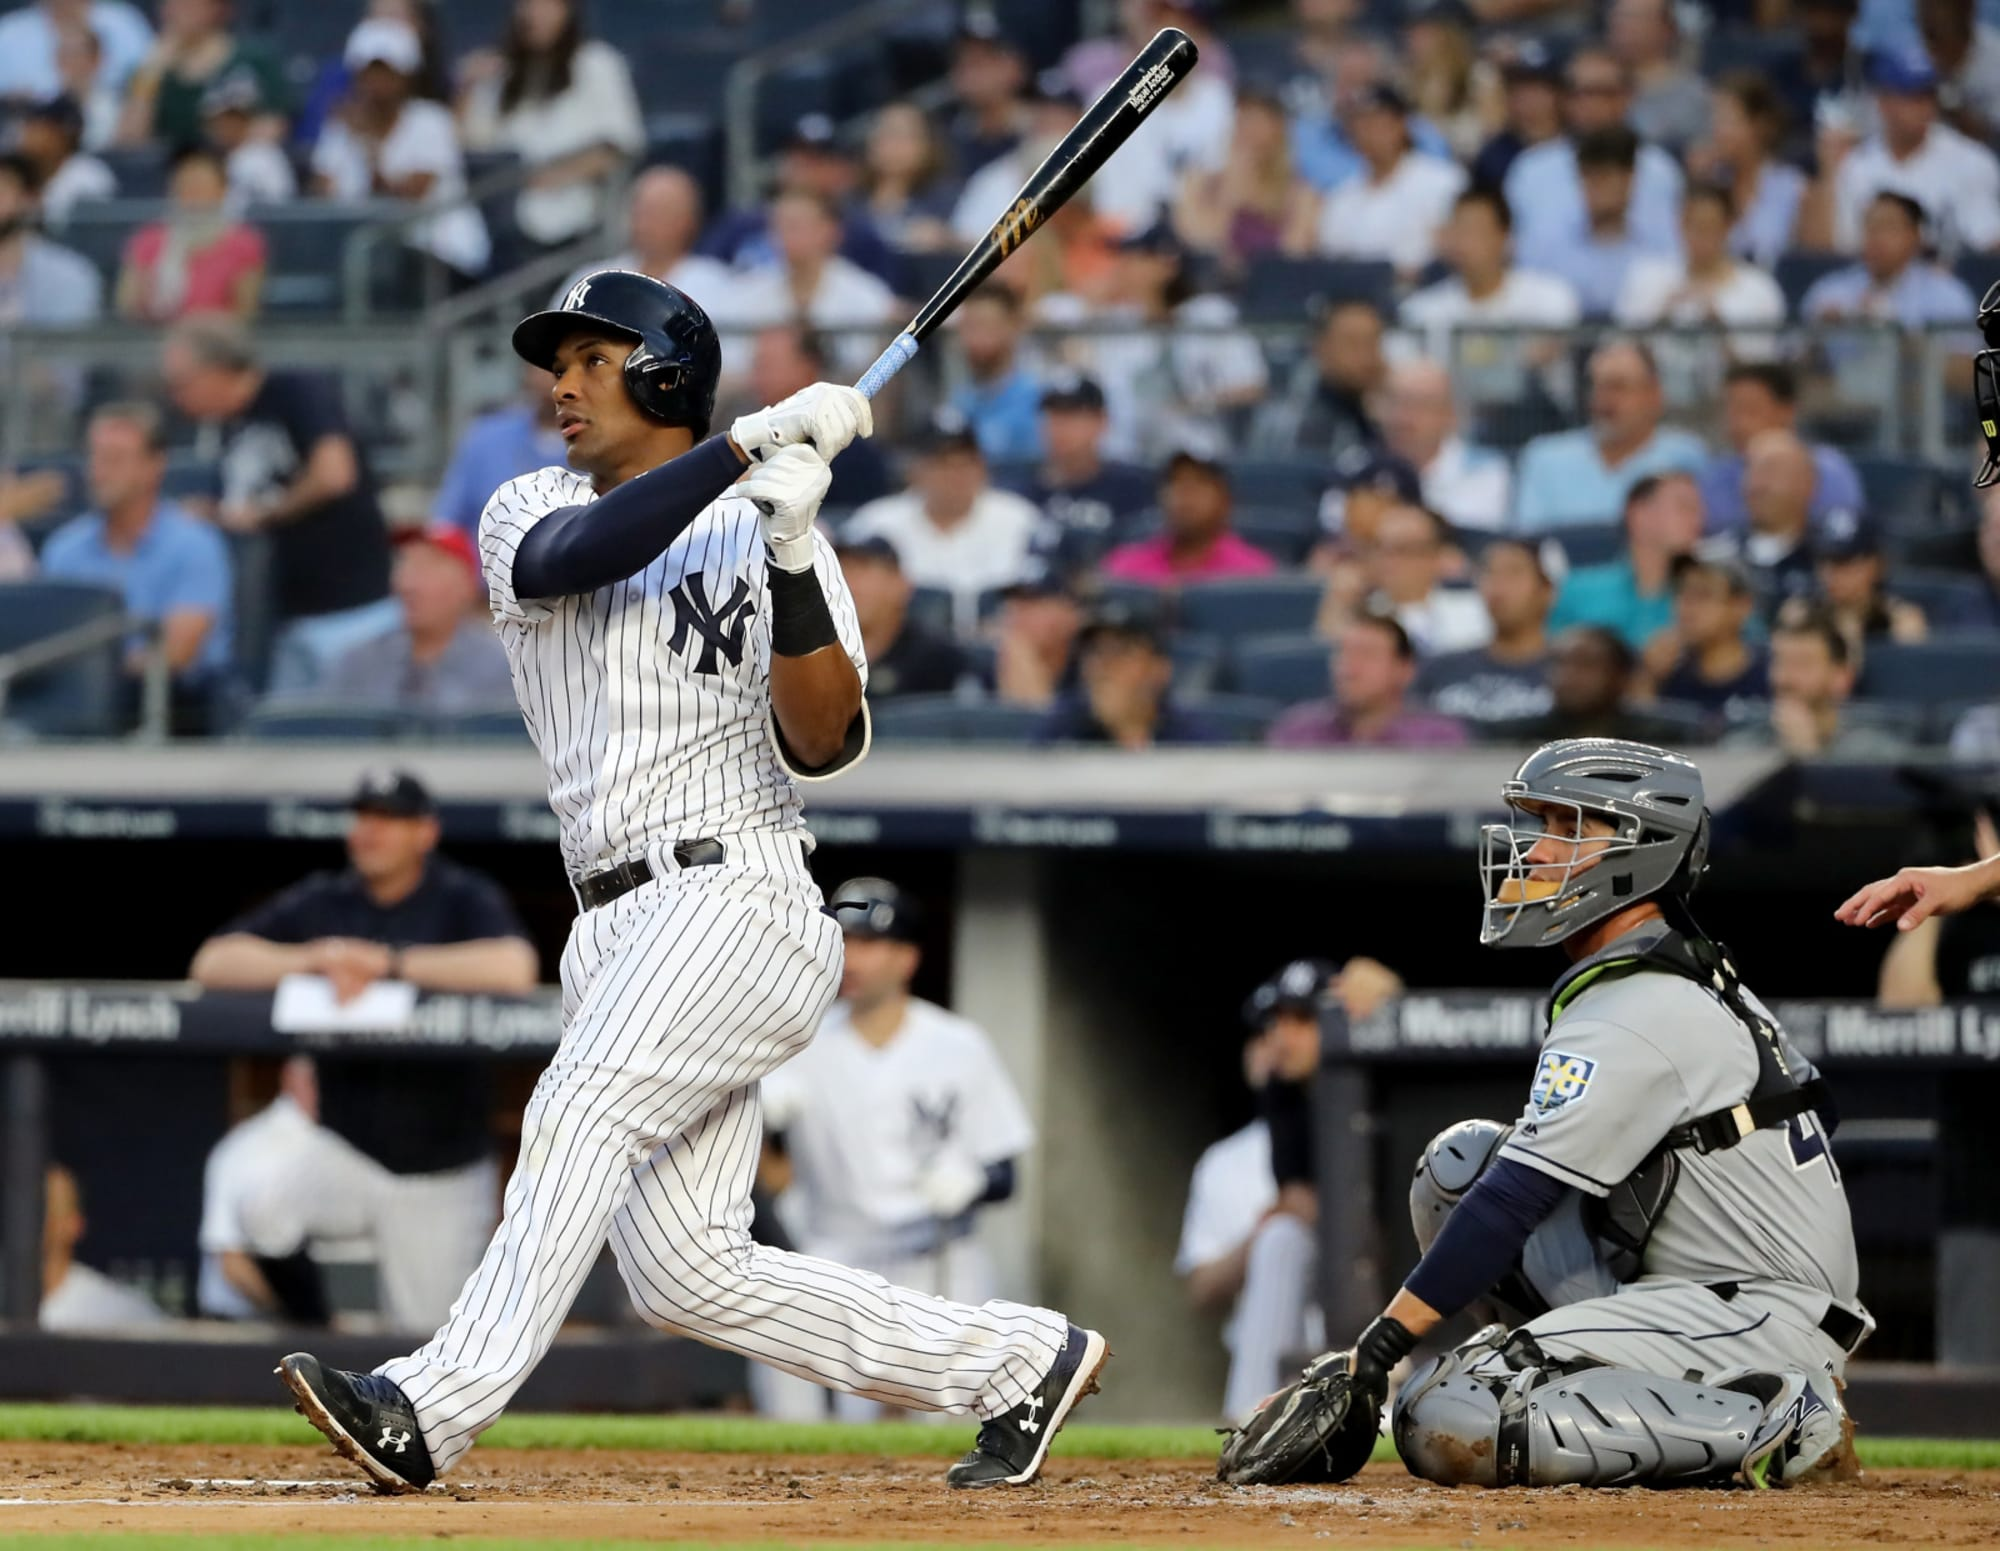 New York Yankees 2020 Projections: Miguel Andujar